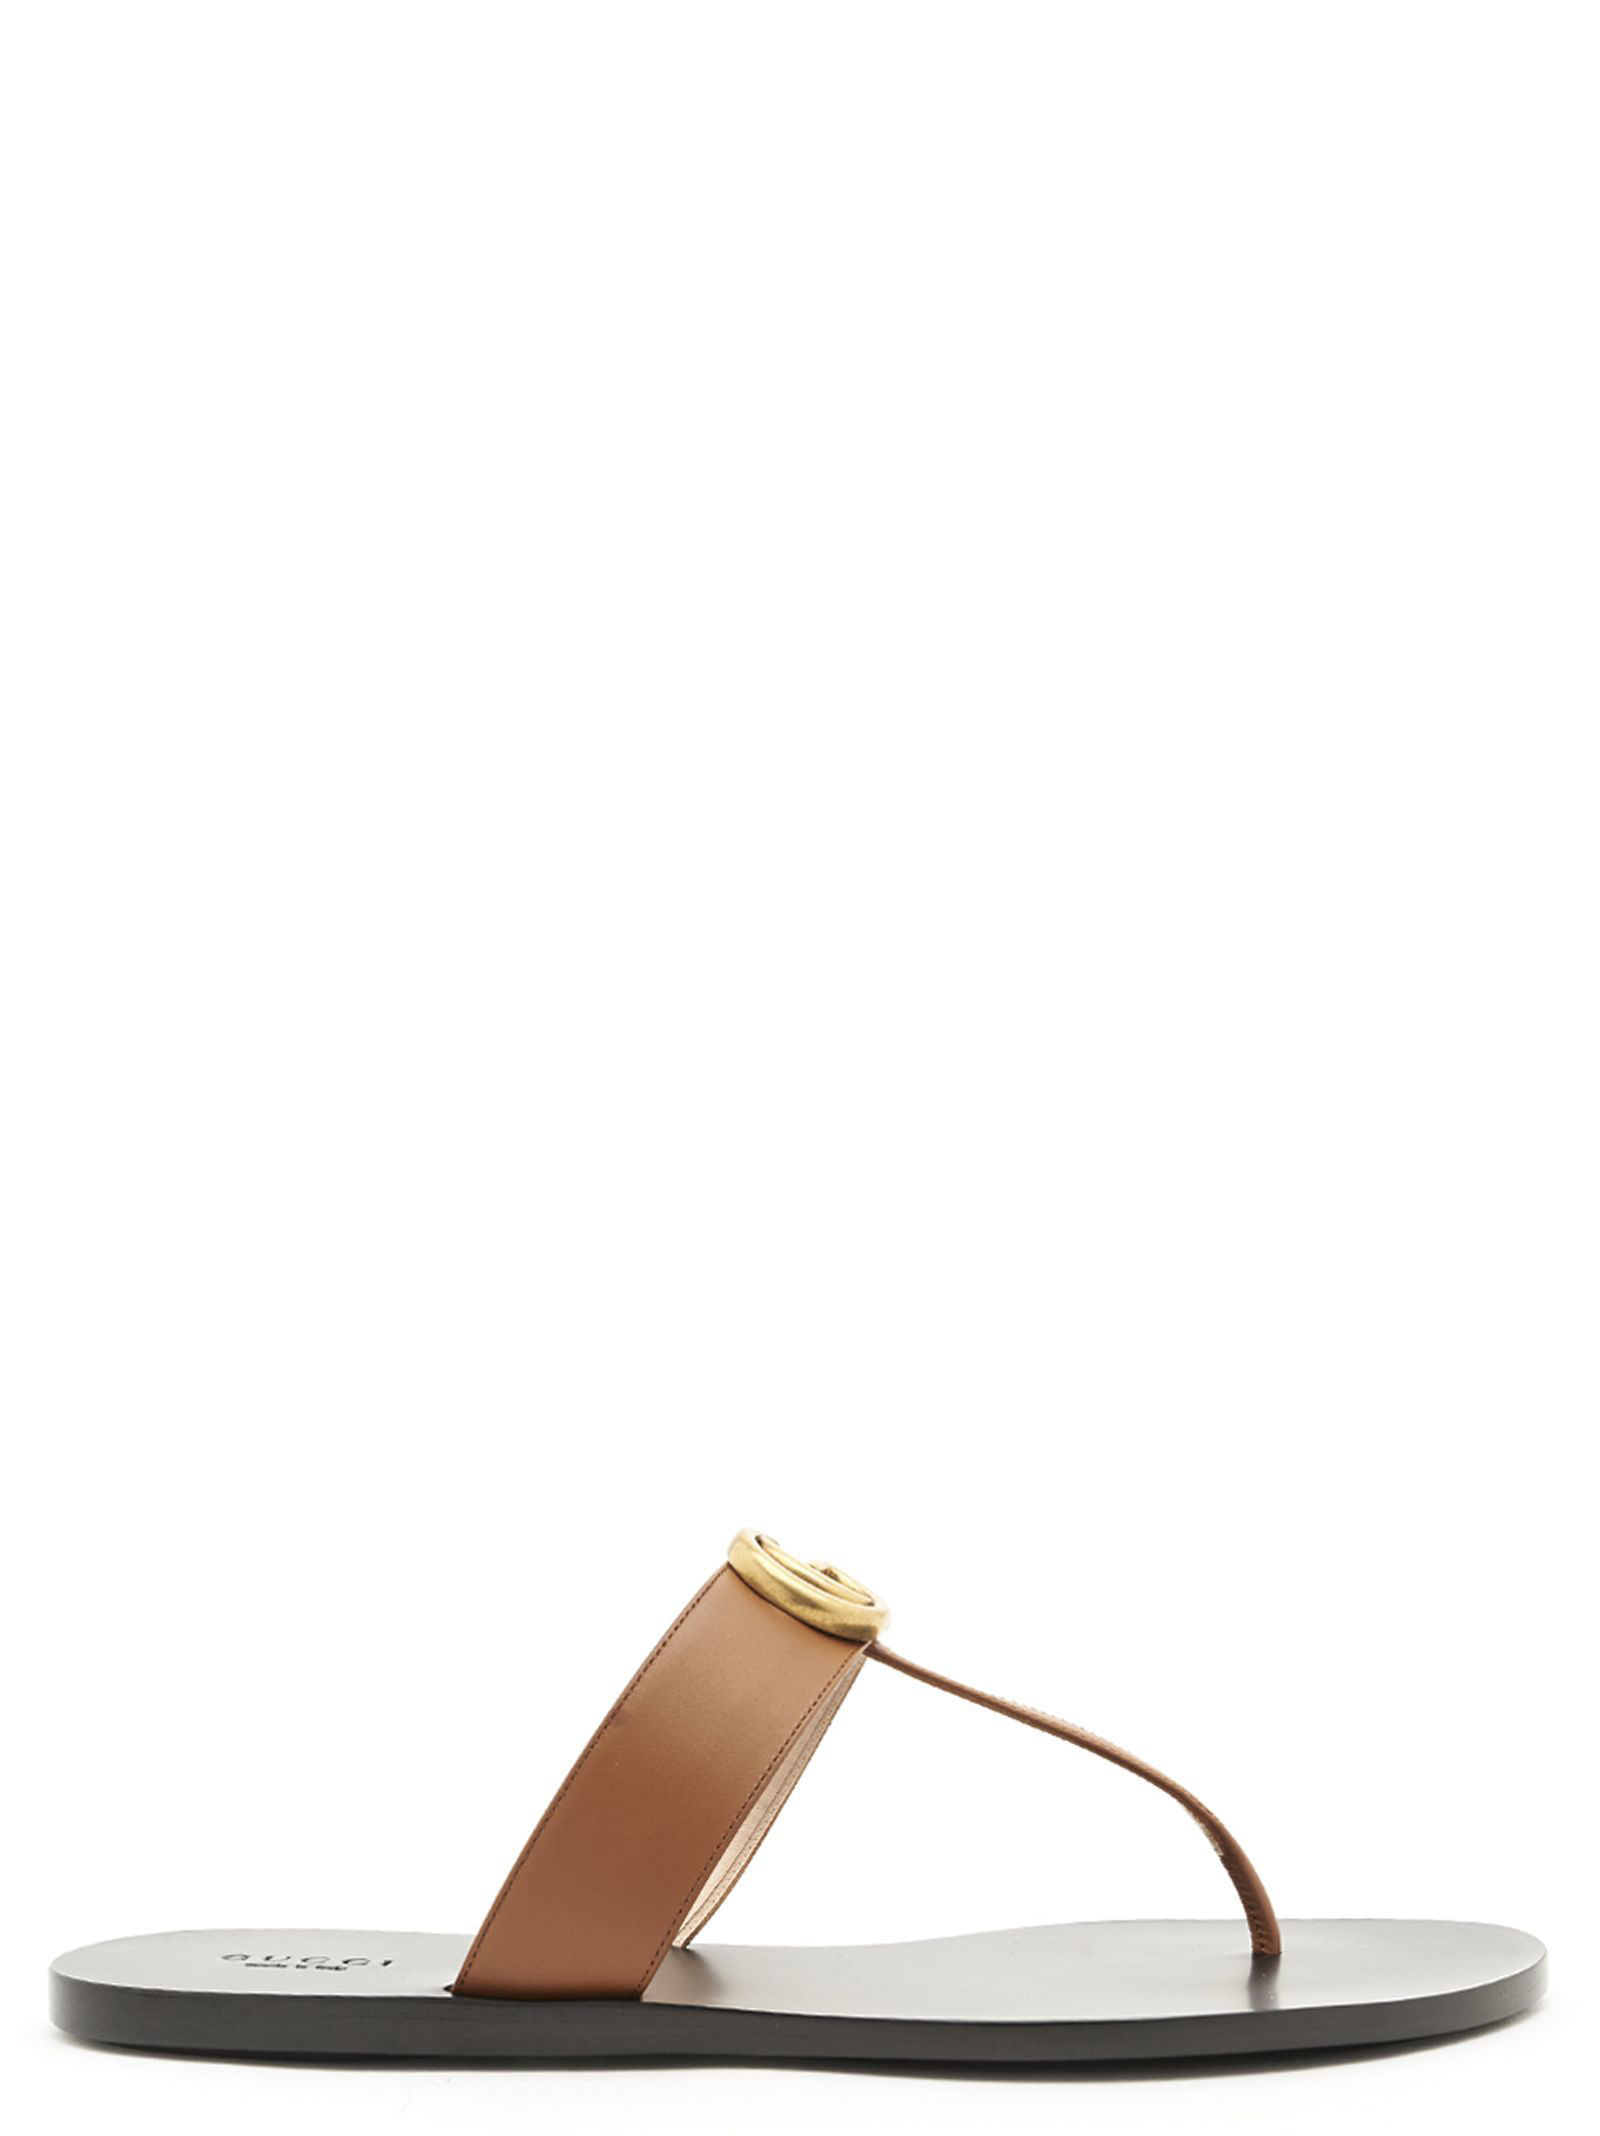 00837920b Gucci 'Marmont' Shoes In Brown | ModeSens